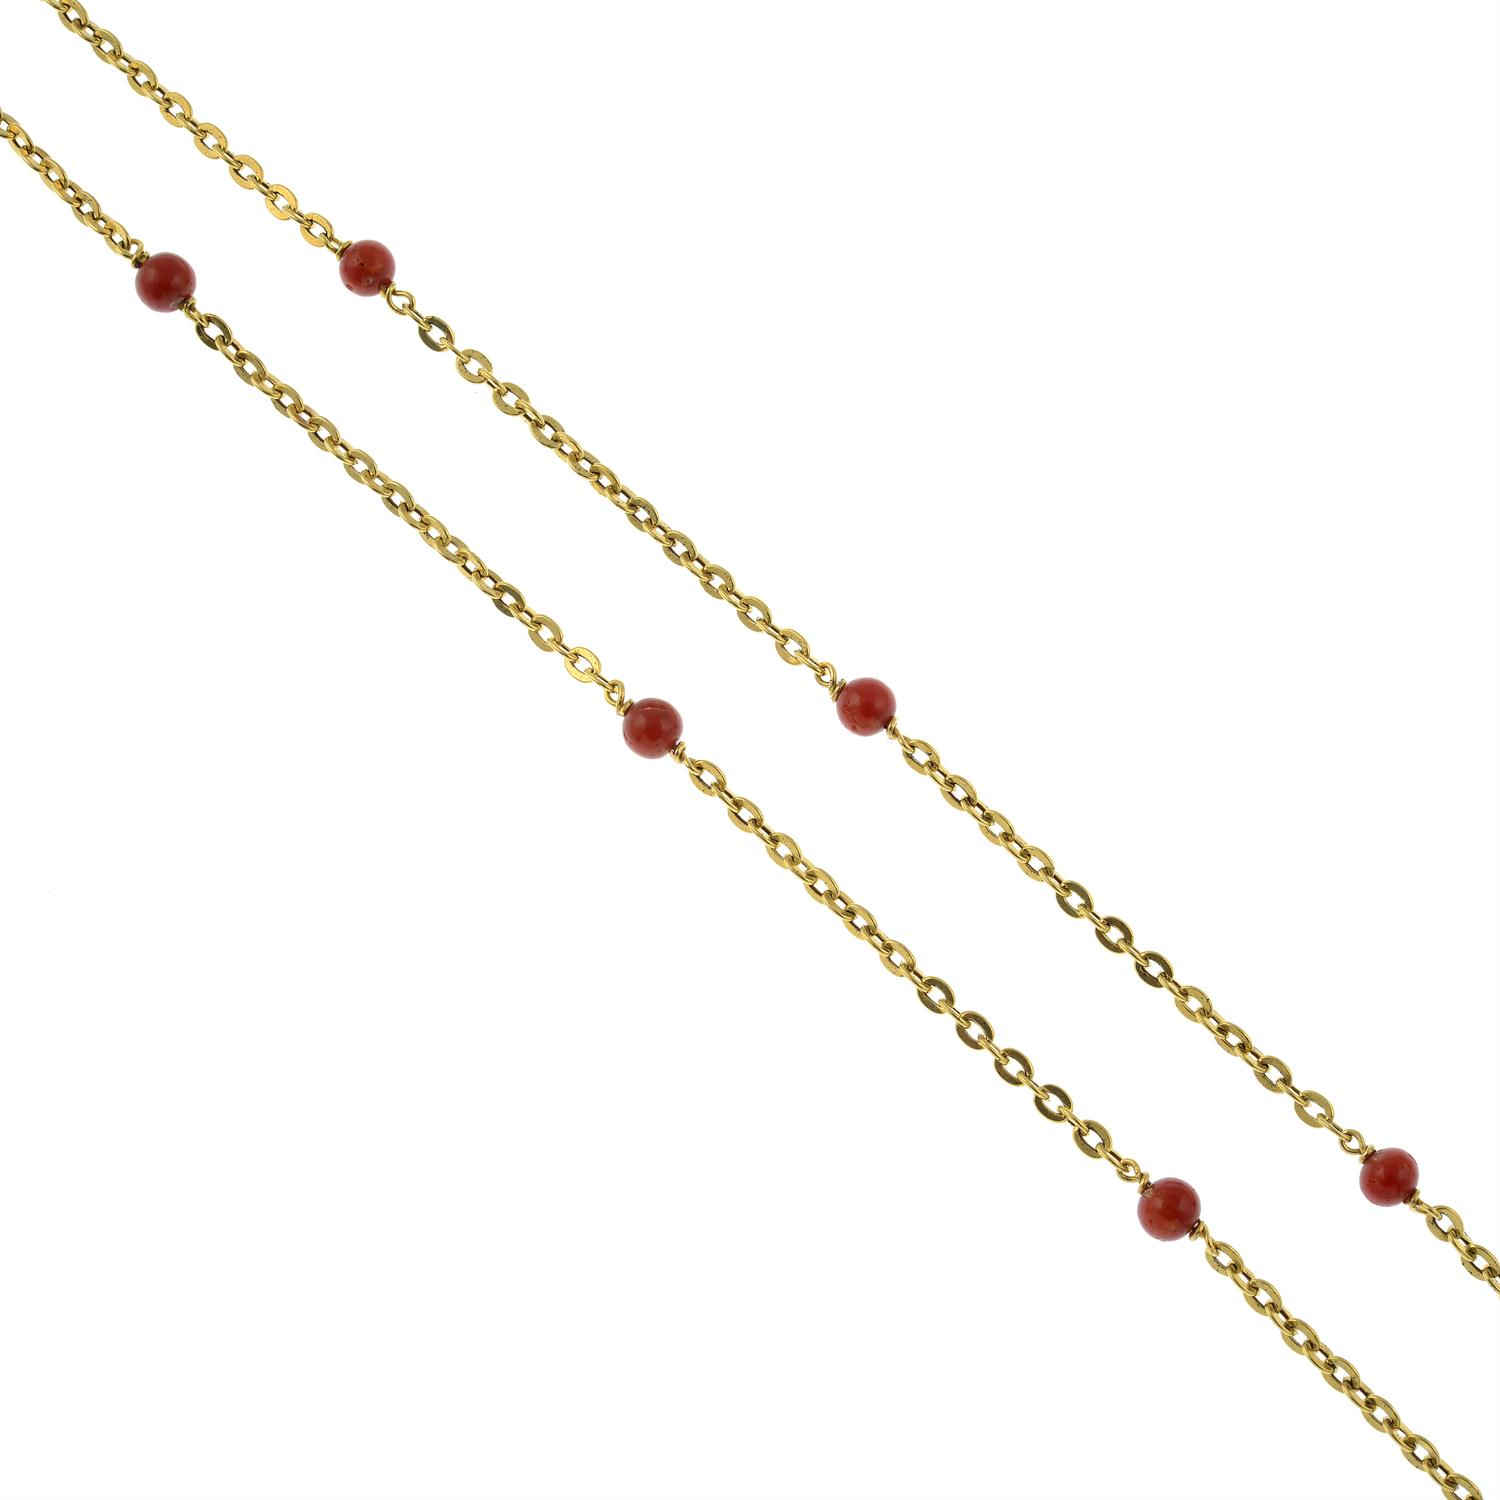 A mid 20th century Italian 18ct gold necklace, with coral bead spacers, by Orf. - Image 2 of 5